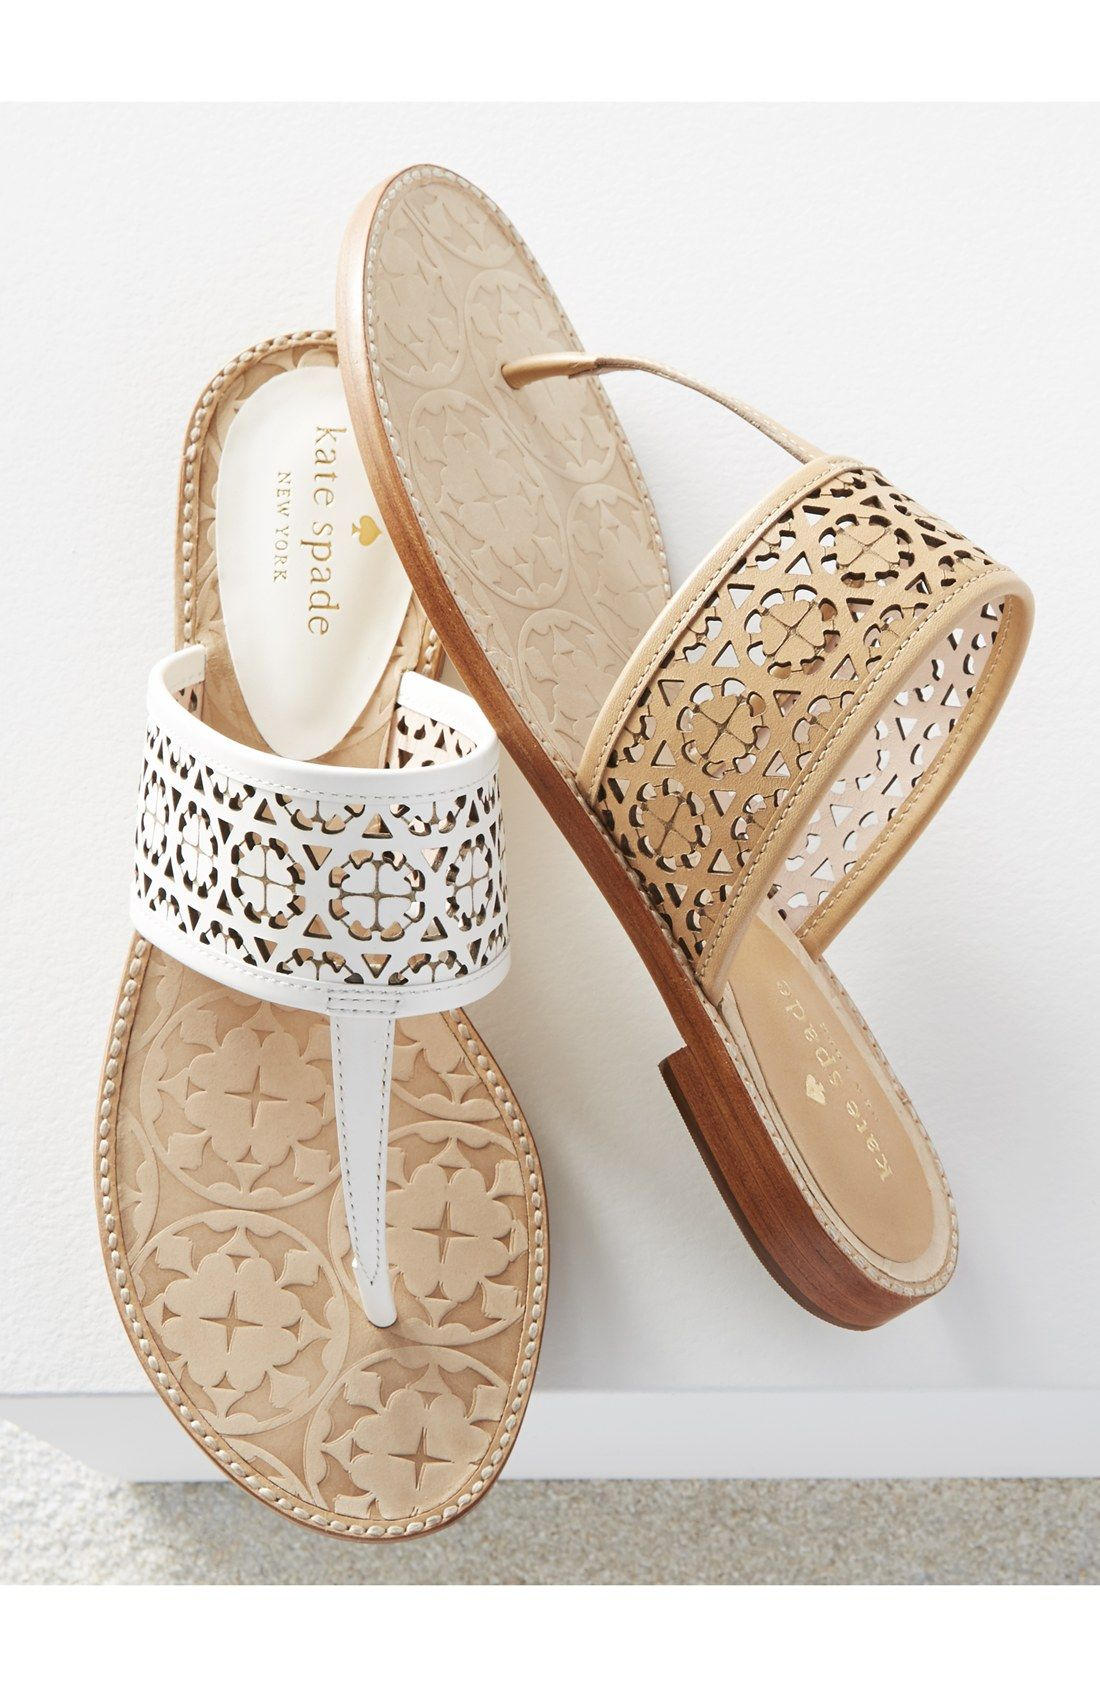 Adoring these leather Kate Spade sandals with clean laser-cut patterns.